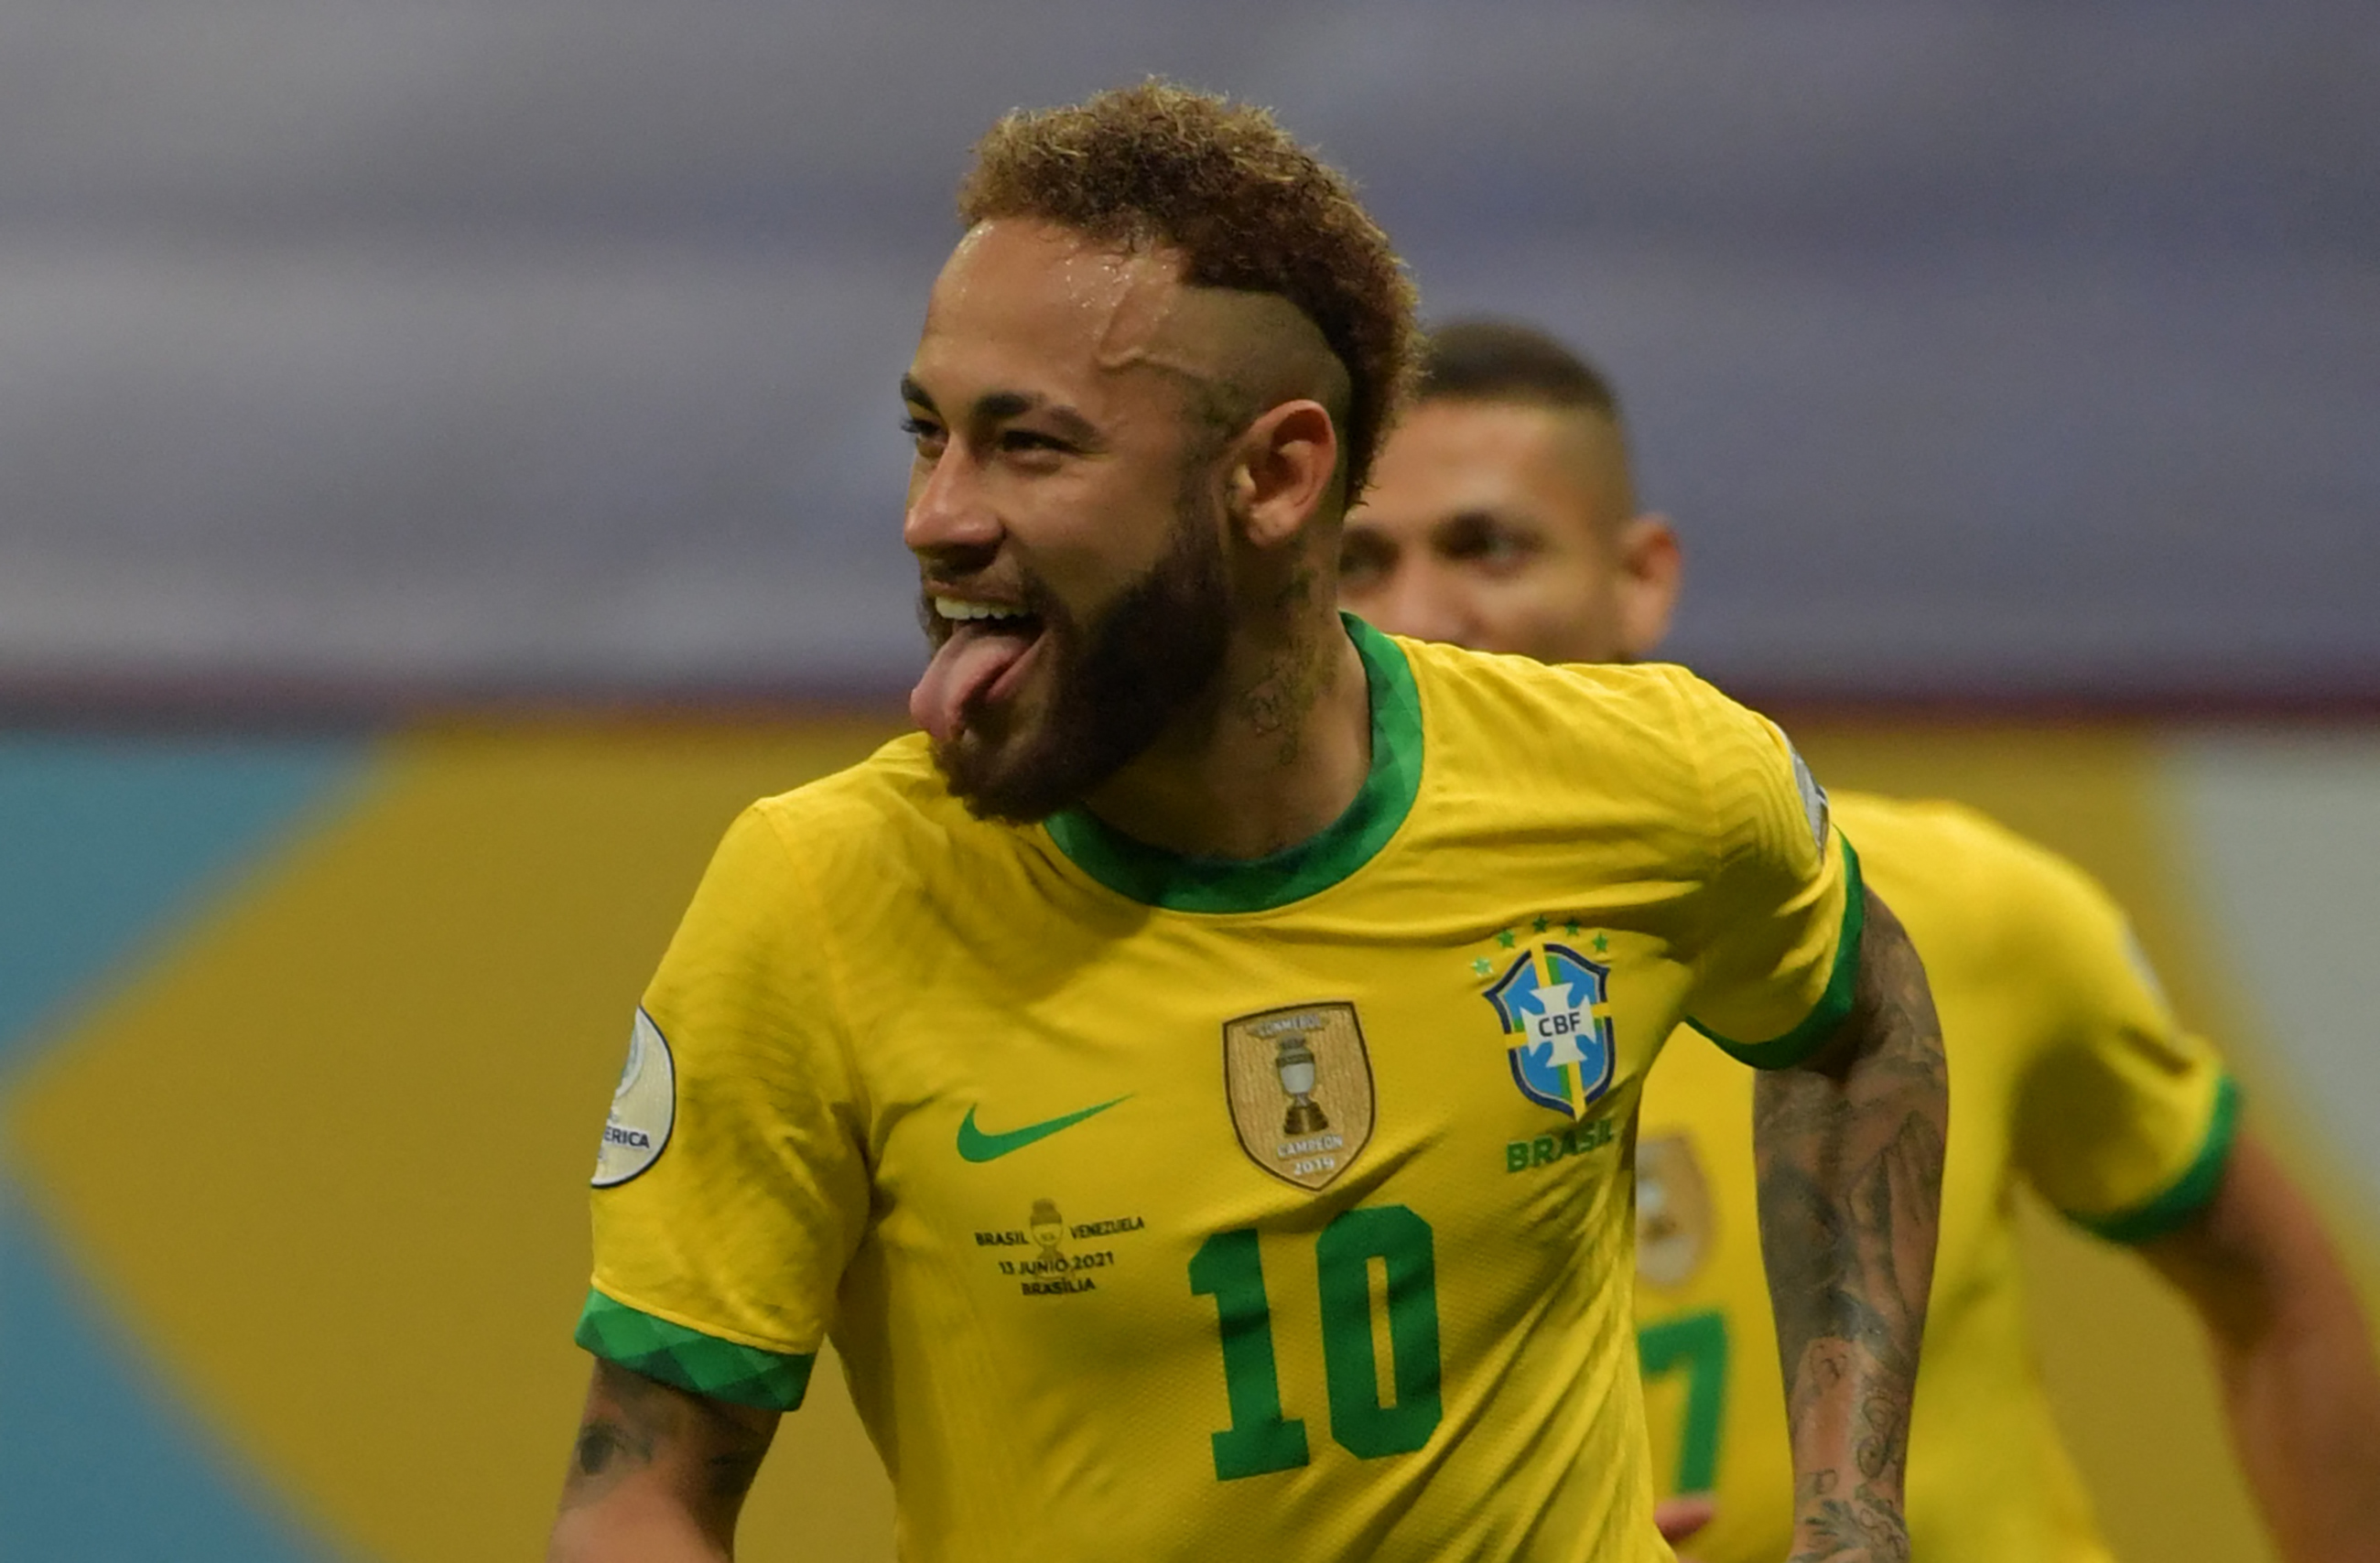 Copa America 2021: Teams, fixtures, results & everything you need to know